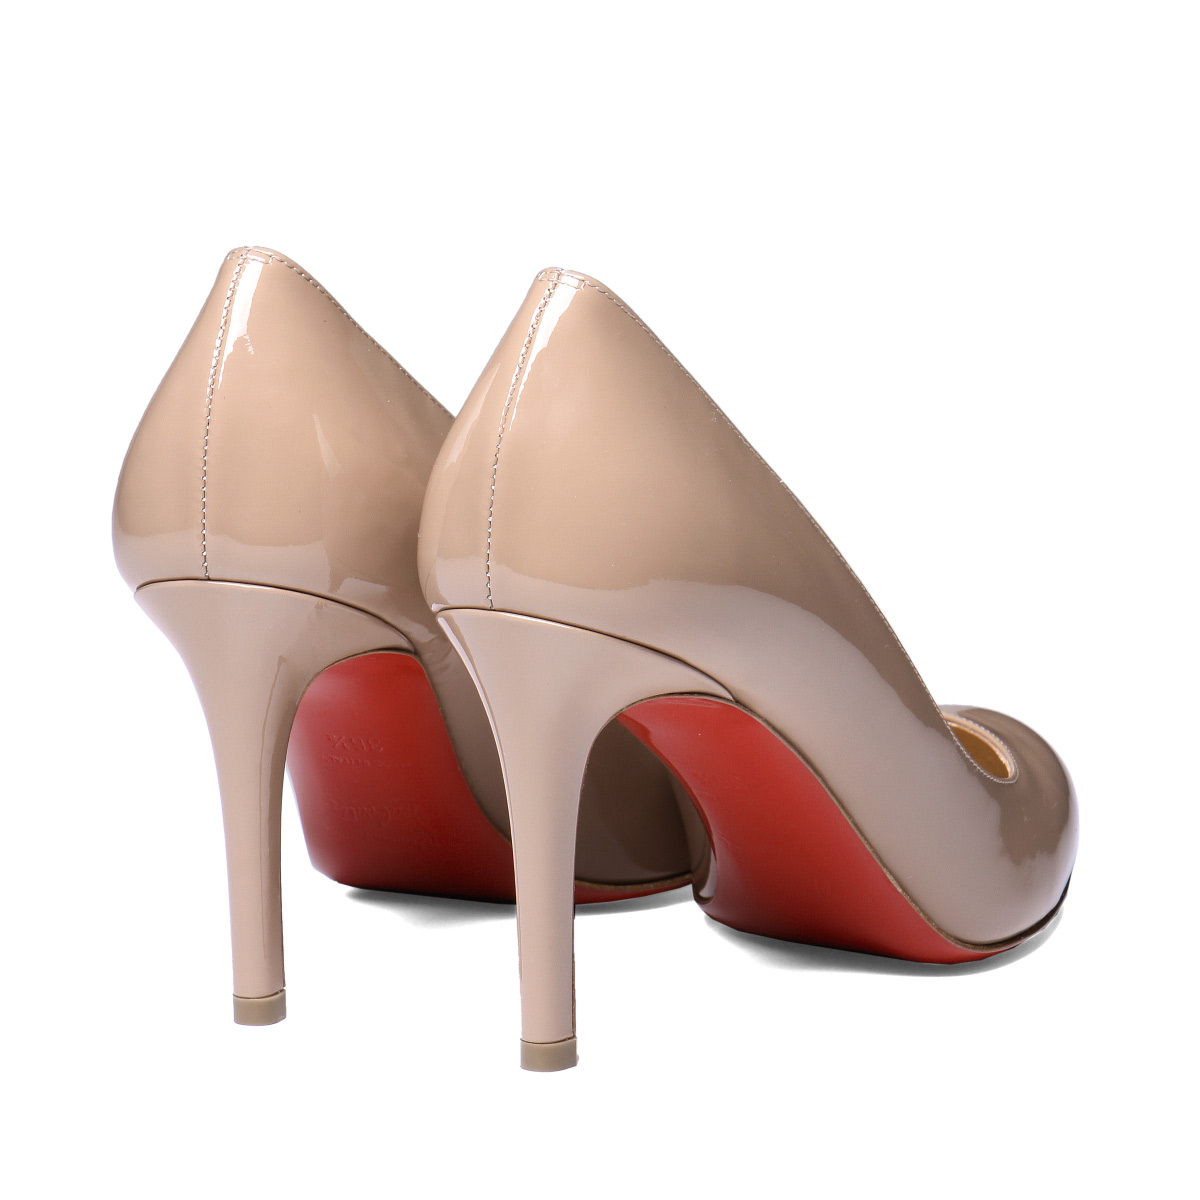 acheter pas cher 6030f bd2c7 クリスチャンルブタン Christian Louboutin shoes Lady's 1180592 PK1A plane toe pumps  FIFILLE フィフィーユ NUDE beige